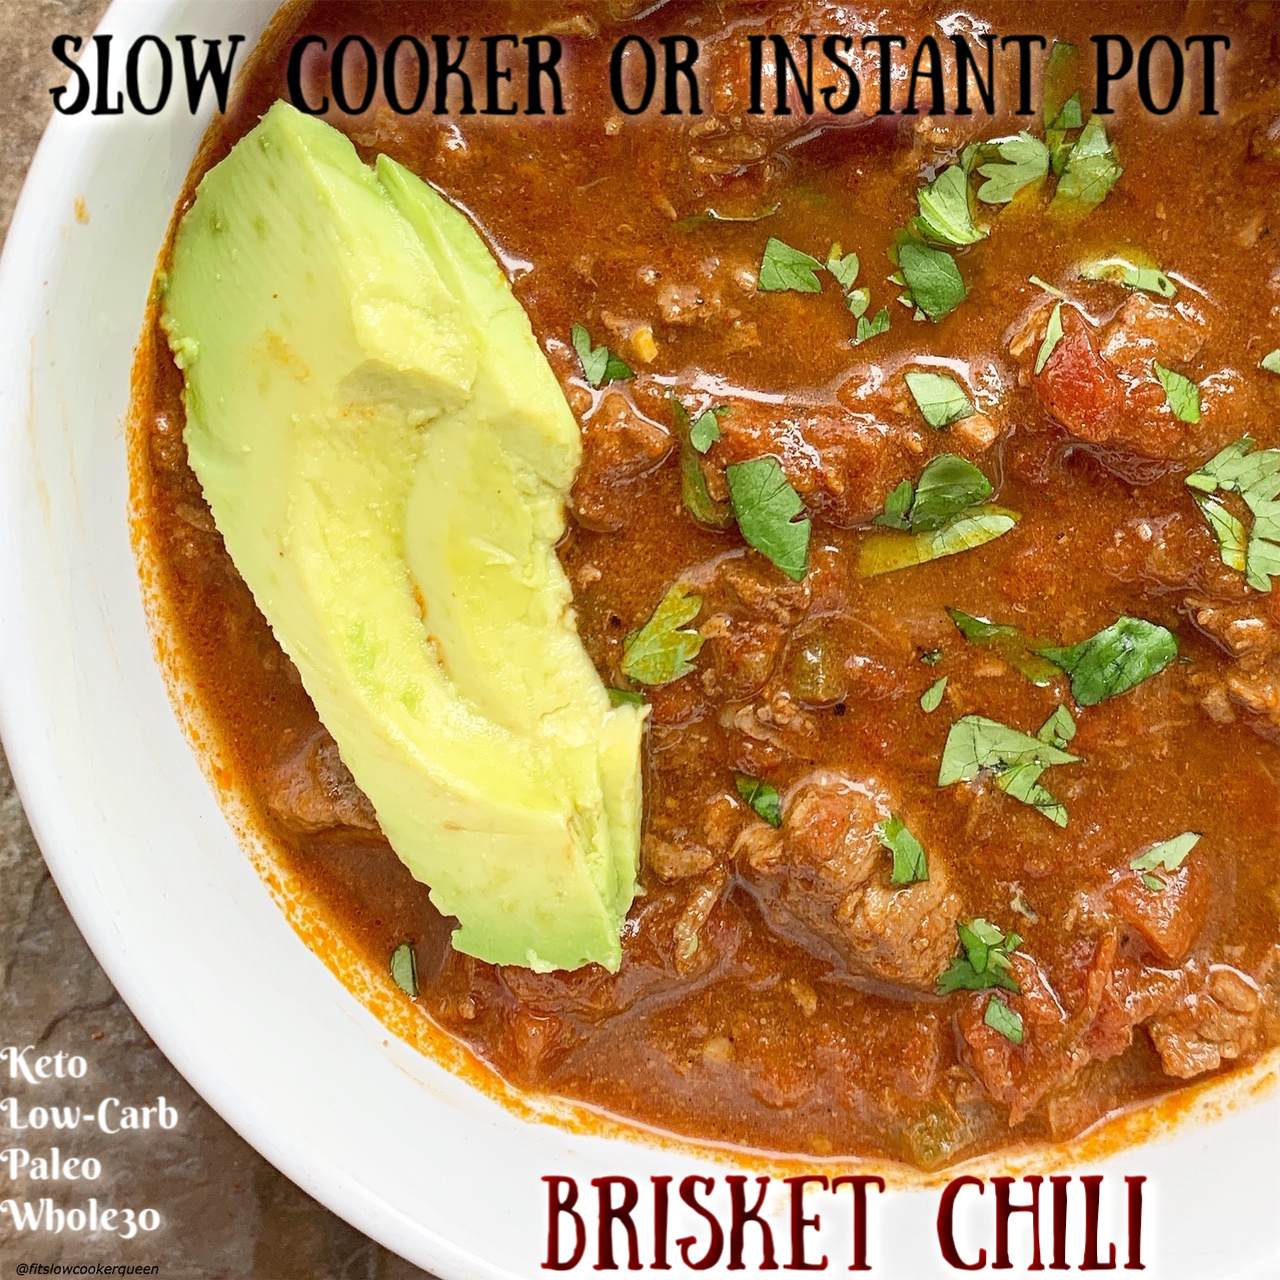 Bean-free but full of flavor. This keto, low-carb, paleo, and whole30 brisket chili can be served any day of the week. Make this healthy chili in the slow cooker or Instant Pot (6)